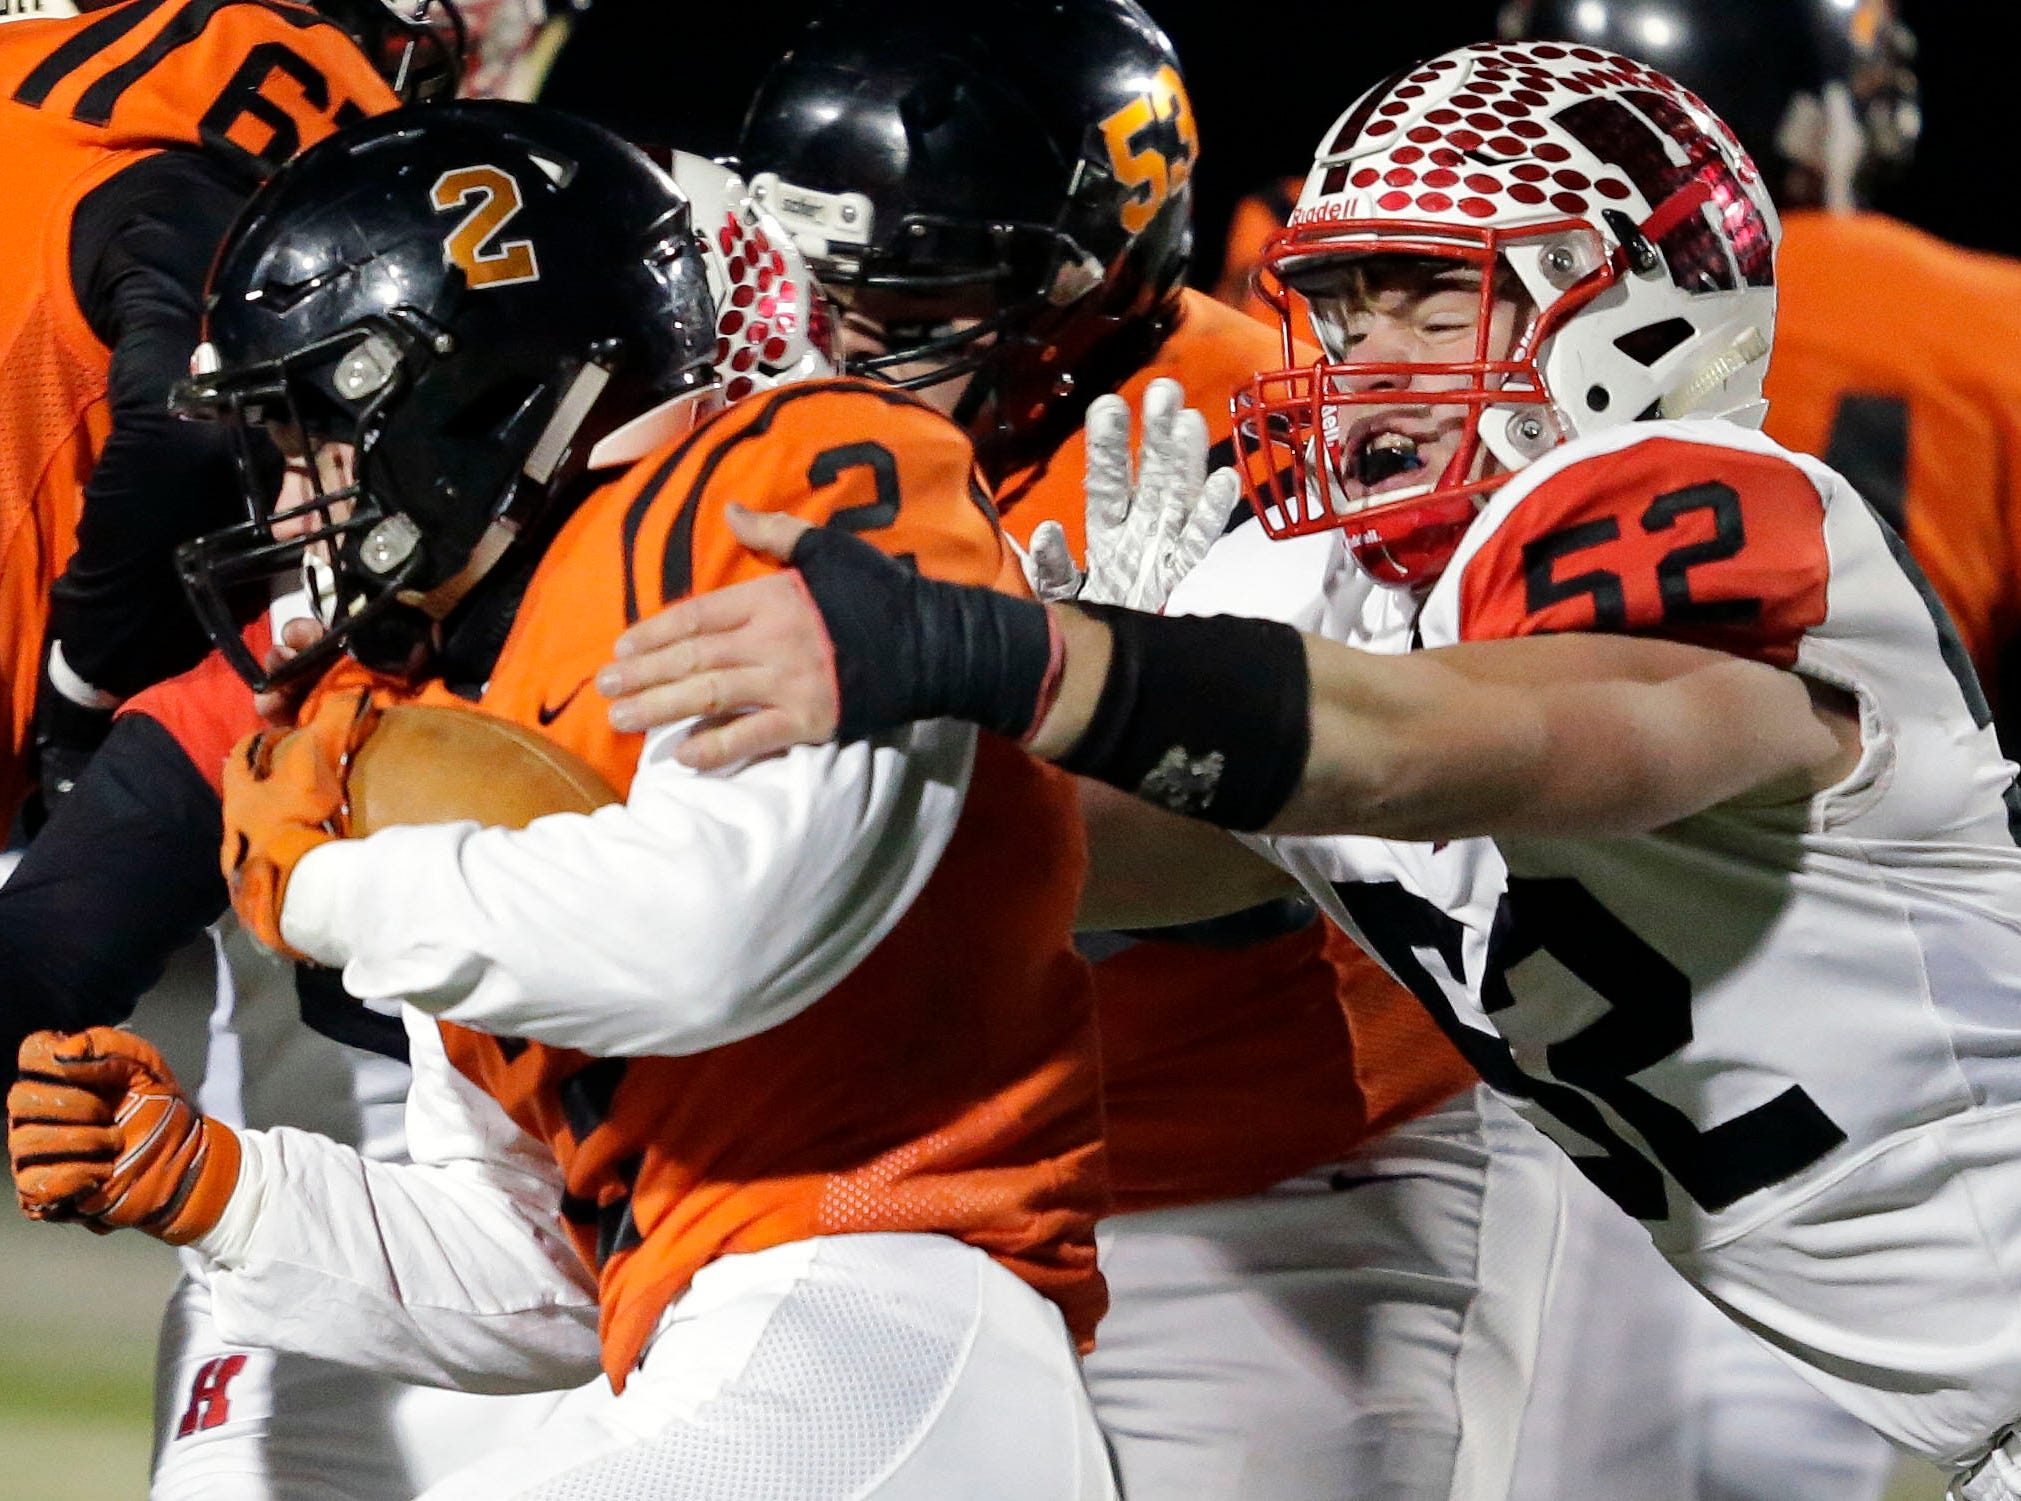 Brant Bohman of Marshfield is tackled by Jake Raddatz of Homestead in a WIAA Division 2 state semifinal football game Friday, November 9, 2018, at Calder Stadium in Menasha, Wis.Ron Page/USA TODAY NETWORK-Wisconsin